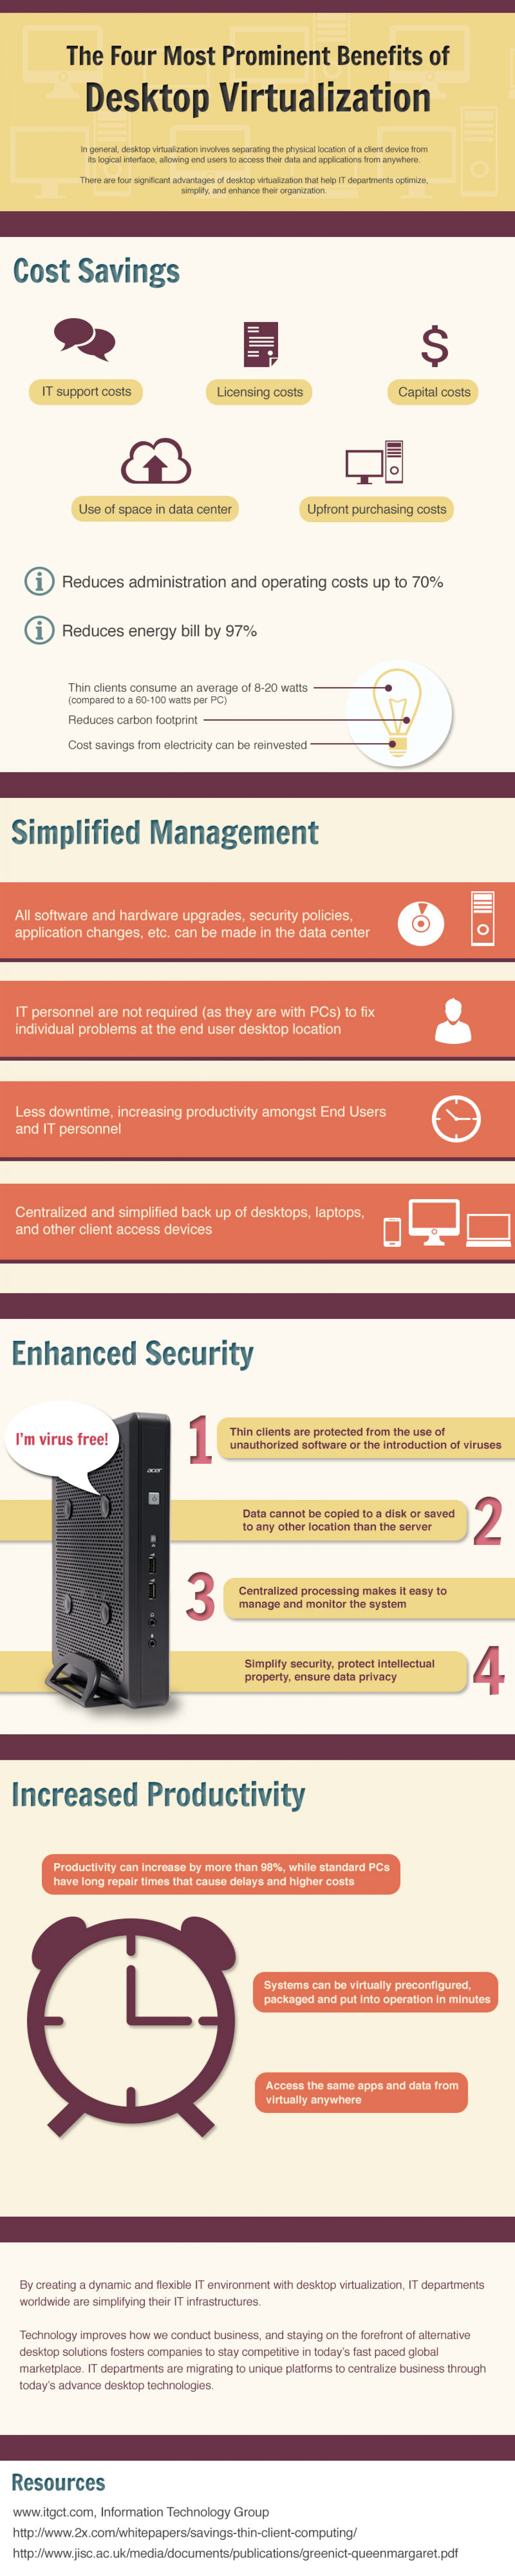 Four Prominent Benefits of Desktop Virtualization Infographic